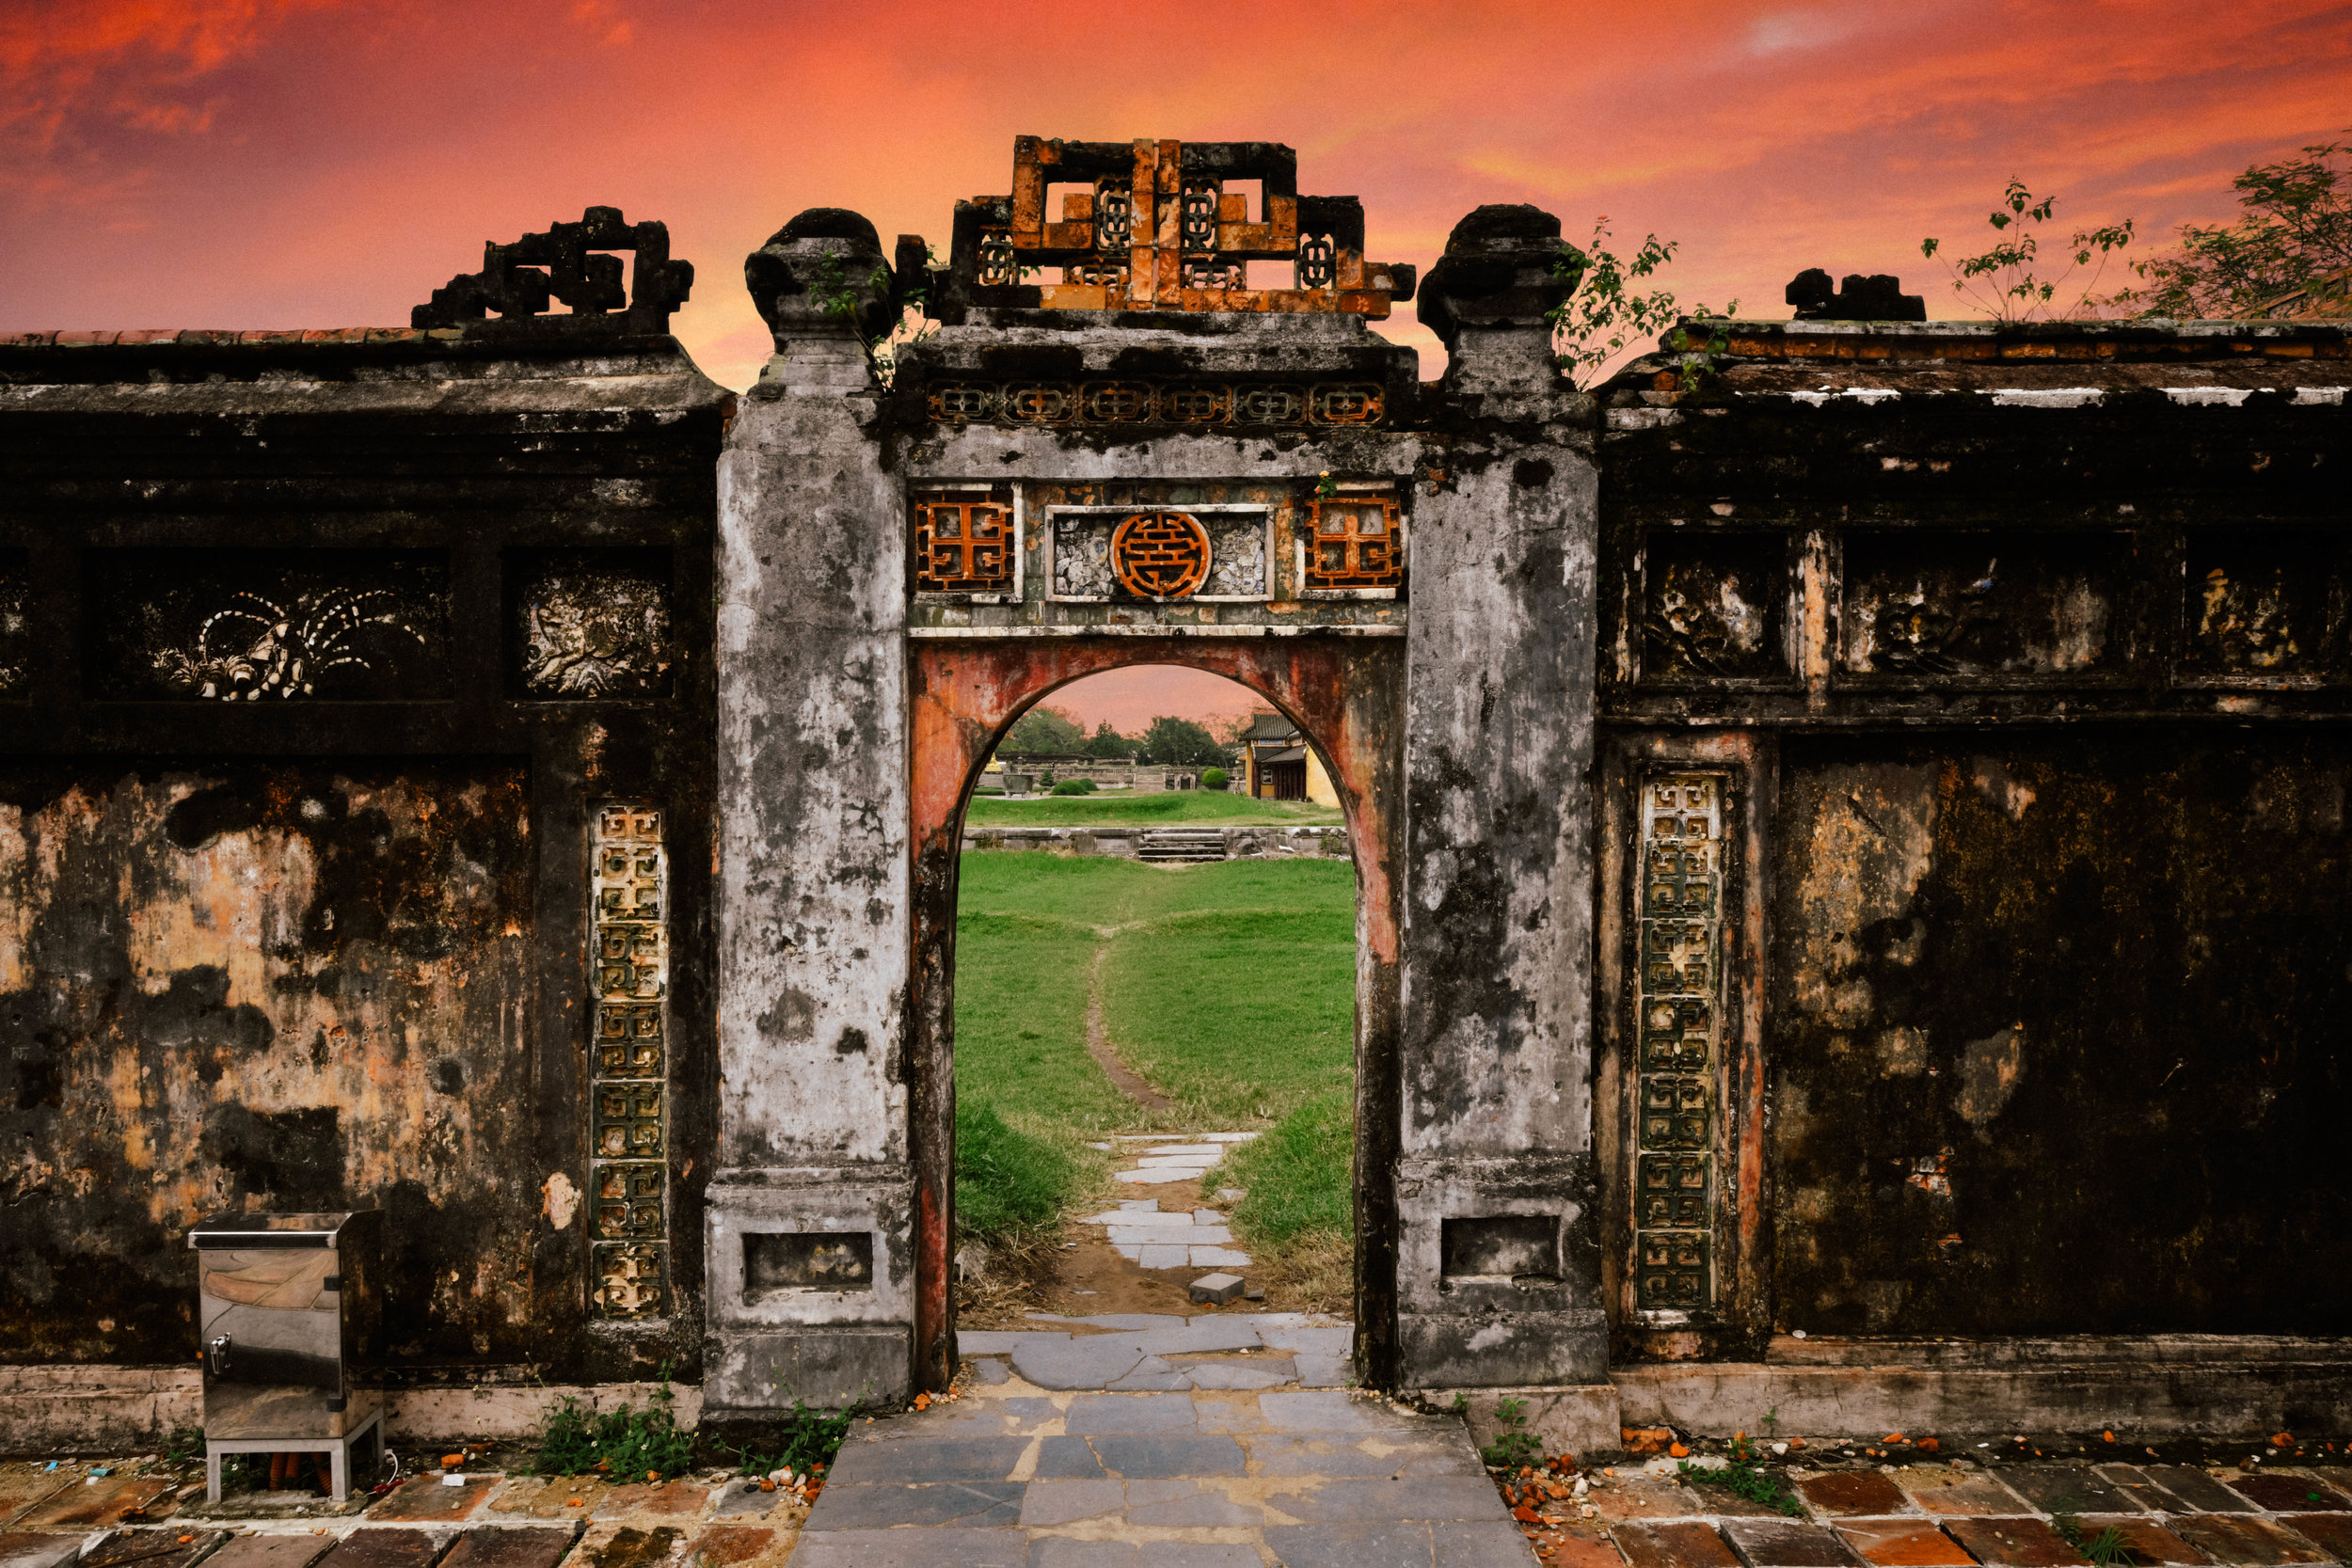 Gate in Imperial City of Hue